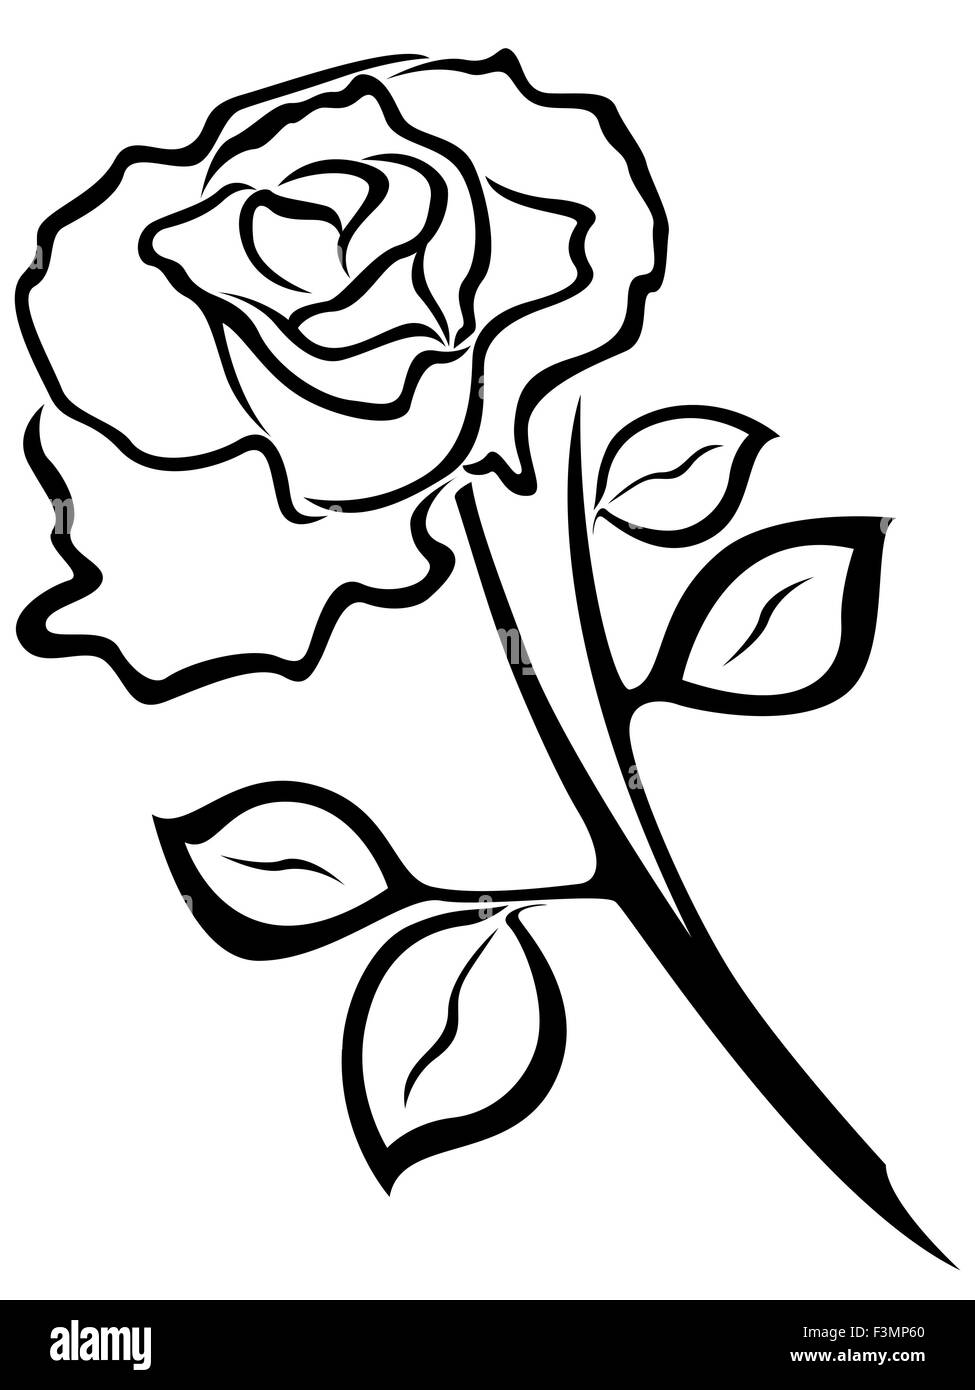 Rose Stem Vector Black And White Stock Photos Images Alamy Flower Line Diagram Simple Drawing Of Bud Outline Isolated On A Background Image